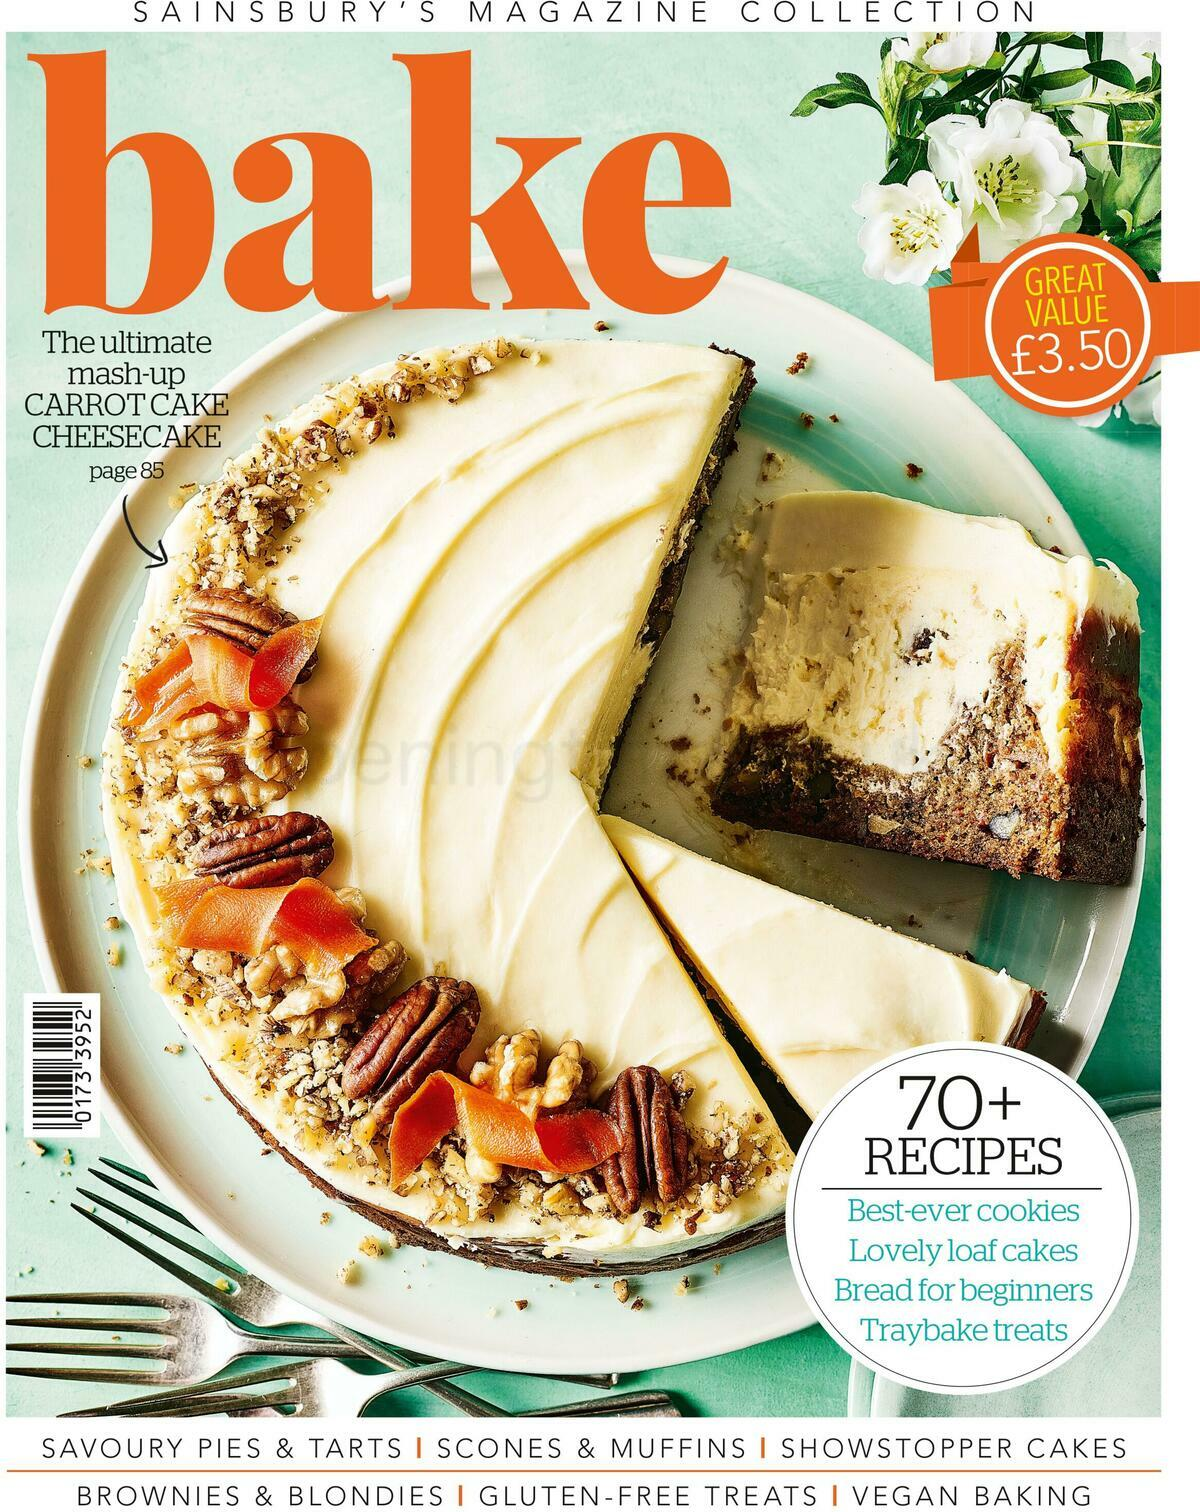 Sainsbury's Let's Bake Magazine Offers from March 18